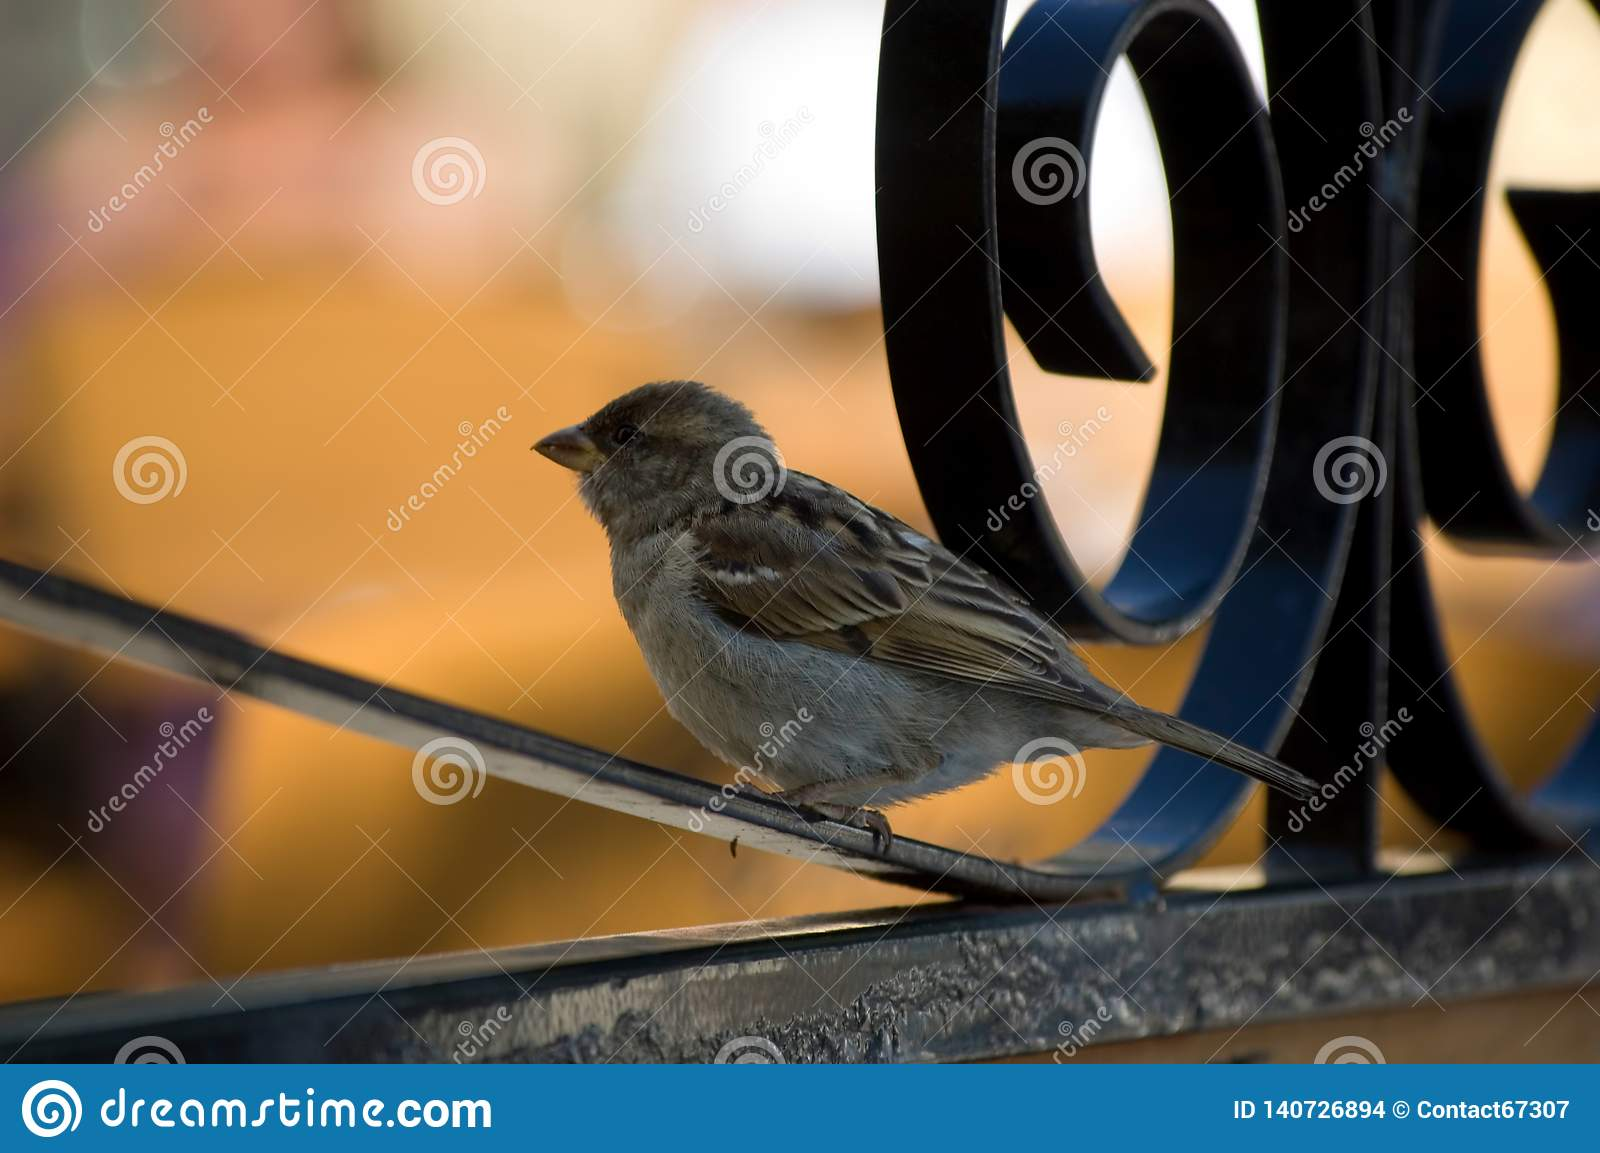 Small bird sitting on a fence